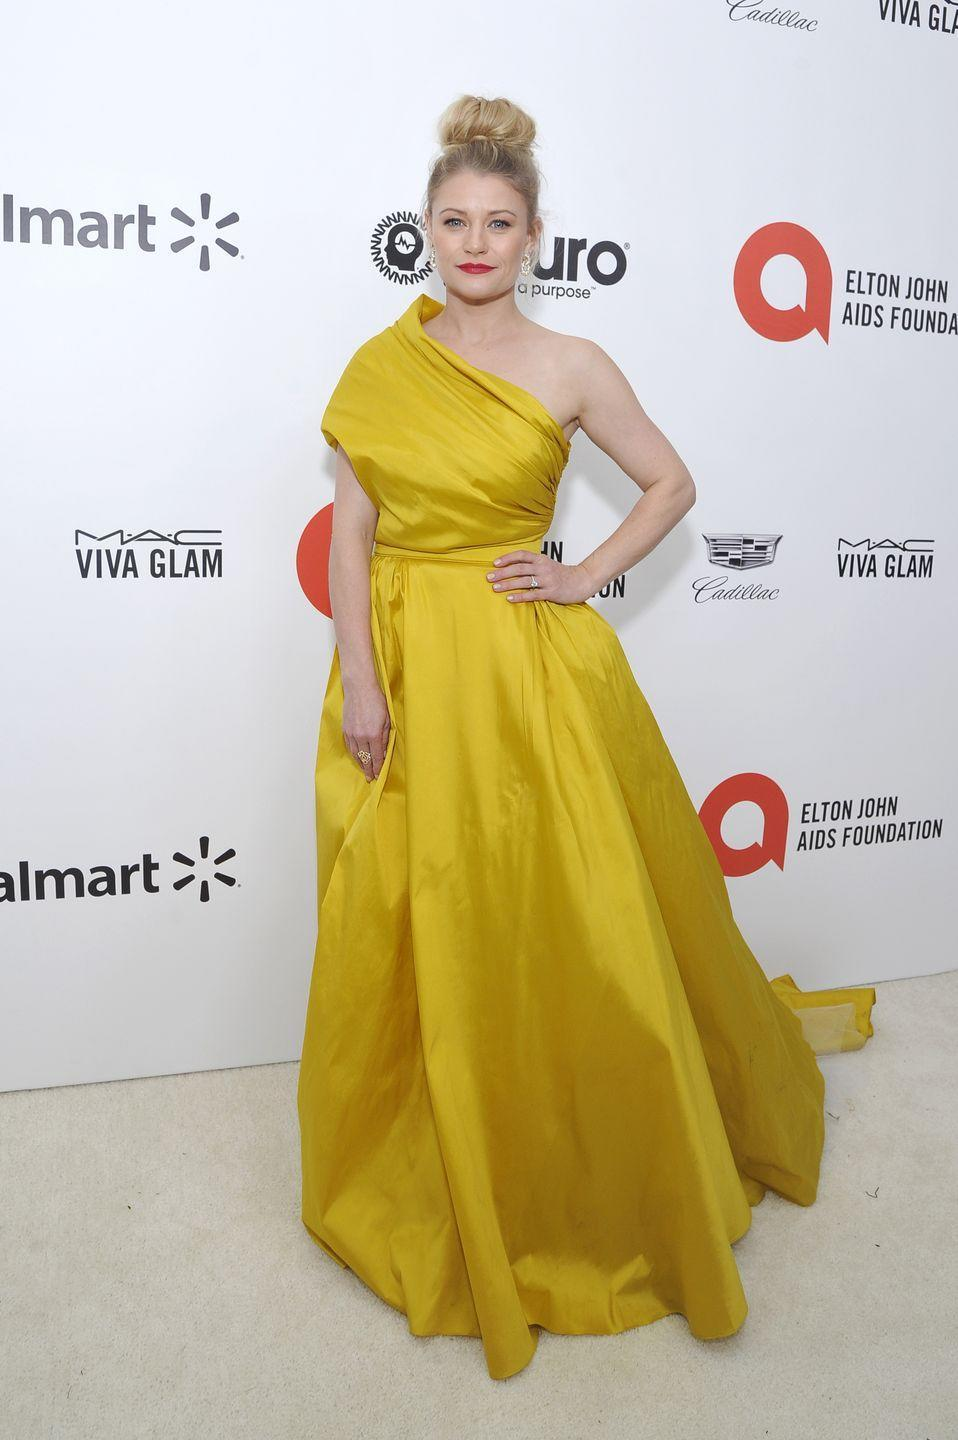 <p> During her stint on <em>Lost </em>she starred in the <em>Hills Have Eyes</em> remake, and then after she became a Disney princess, in a role as Belle on the ABC drama <em>Once Upon a Time</em>.</p>